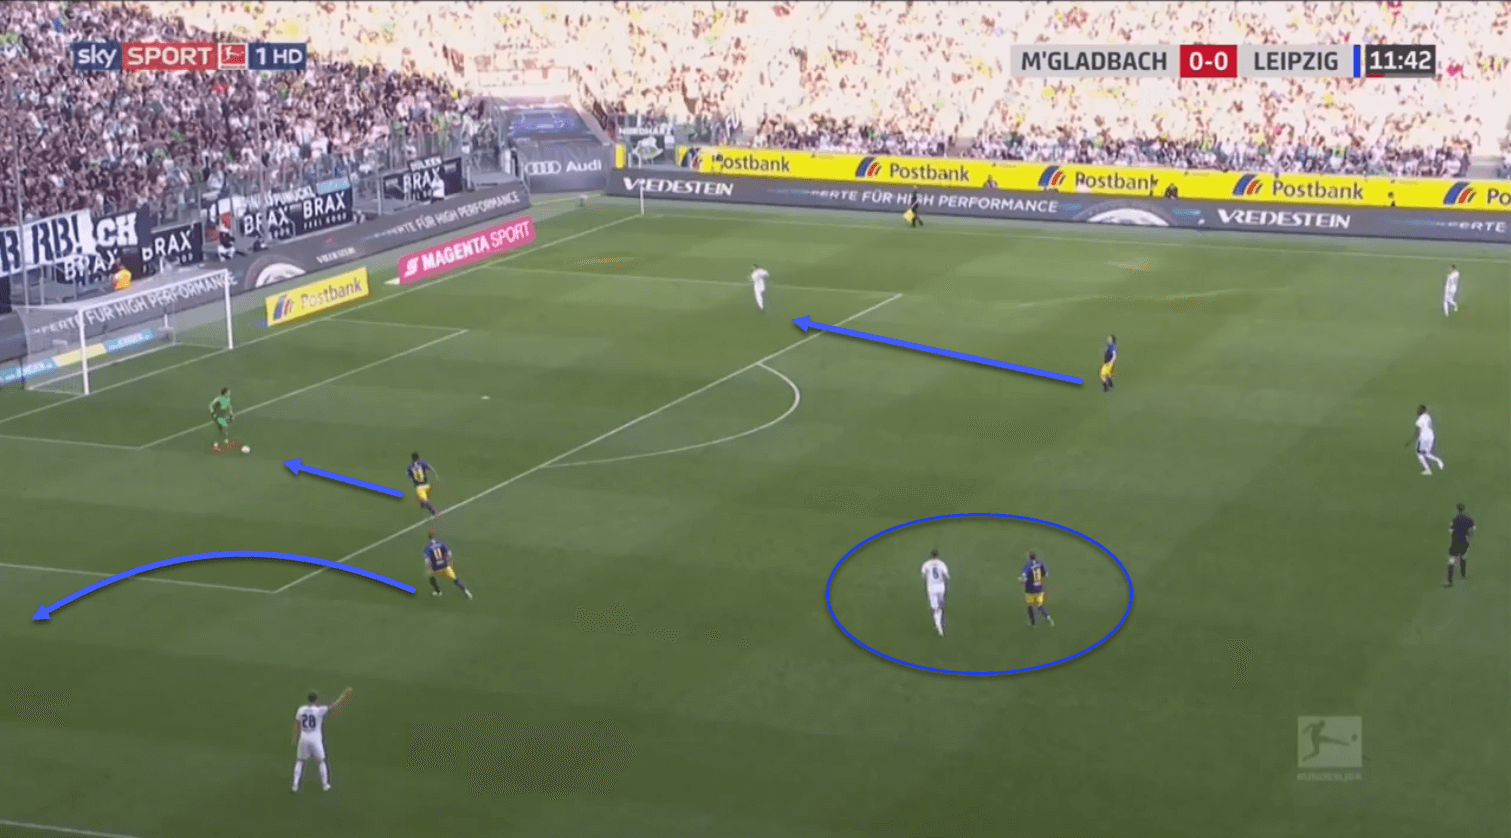 Gladbach RB Leipzig Bundesliga tactical analysis